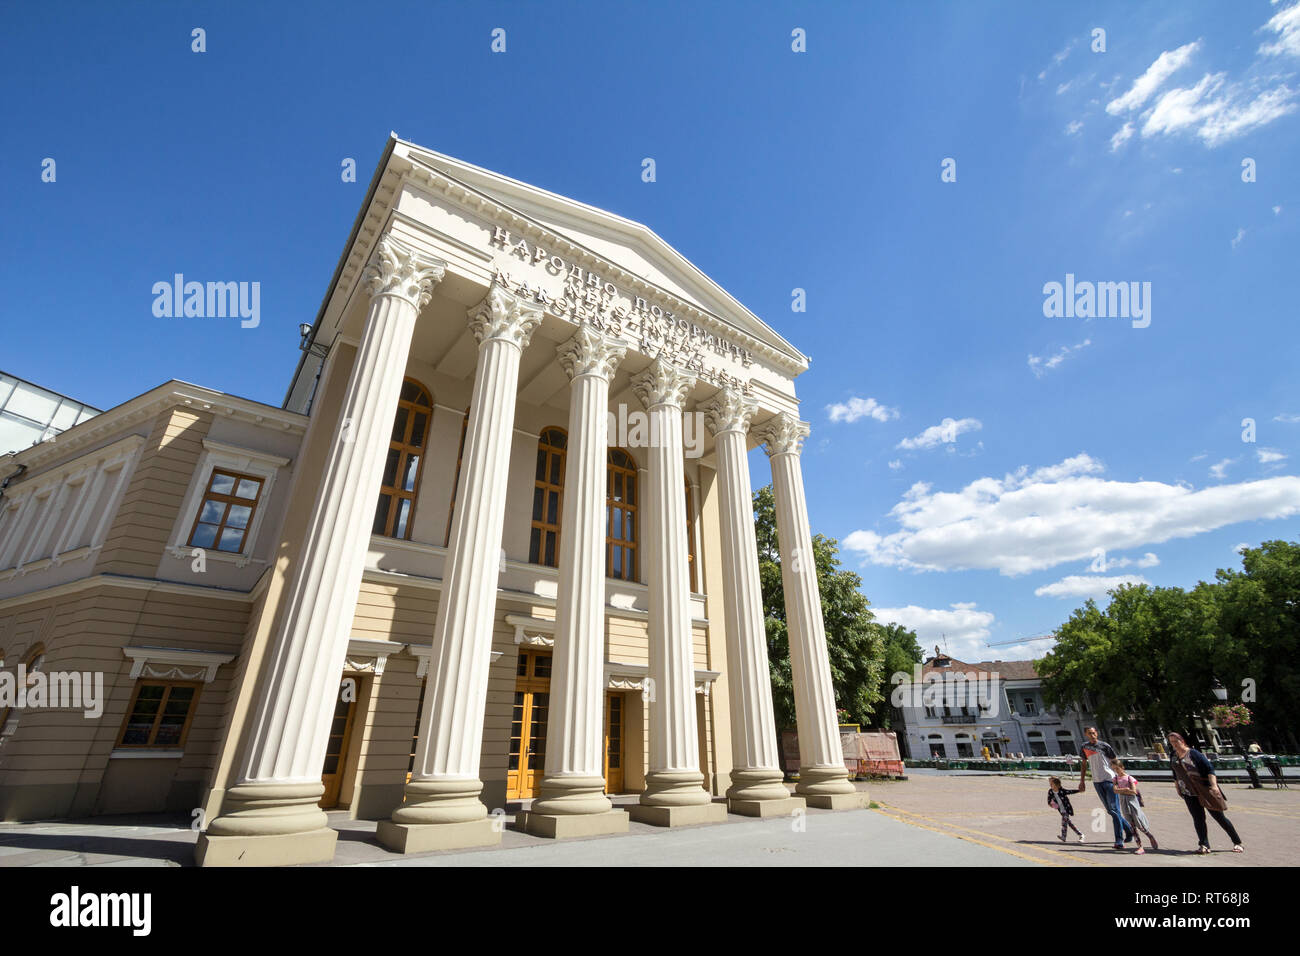 SUBOTICA, SERBIA - JULY 1, 2018: Facade of the National Theater of Subotica, with mention National Theatre translated in Serbian, Croatian & Hungarian Stock Photo